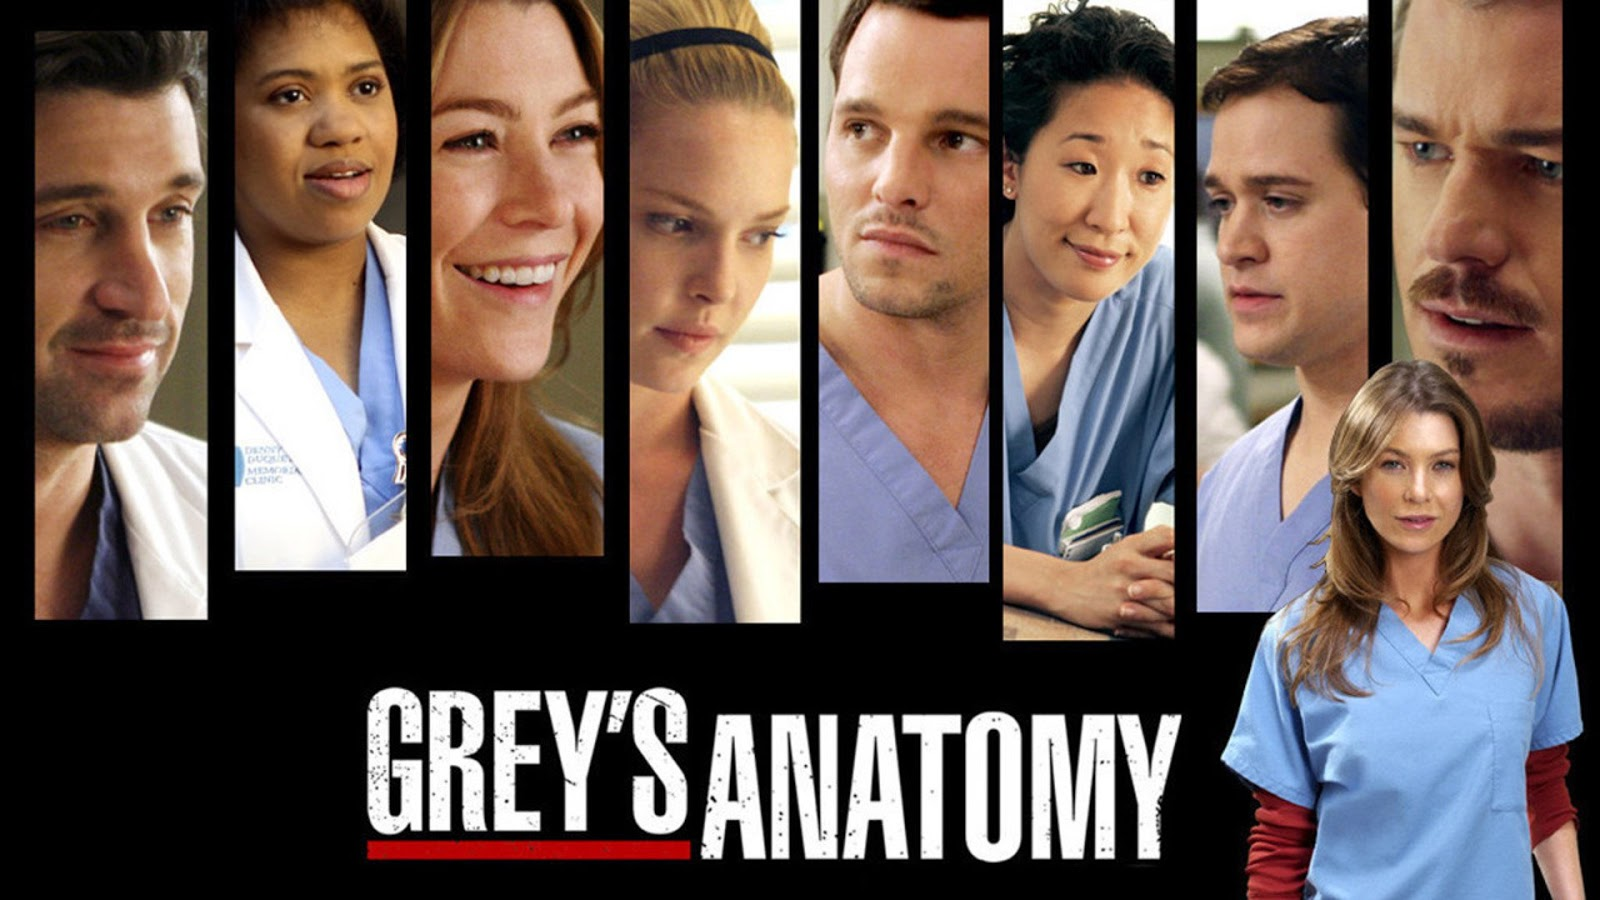 Watch Full Greys Anatomy Season 14 Episode 13 S14e13 Online